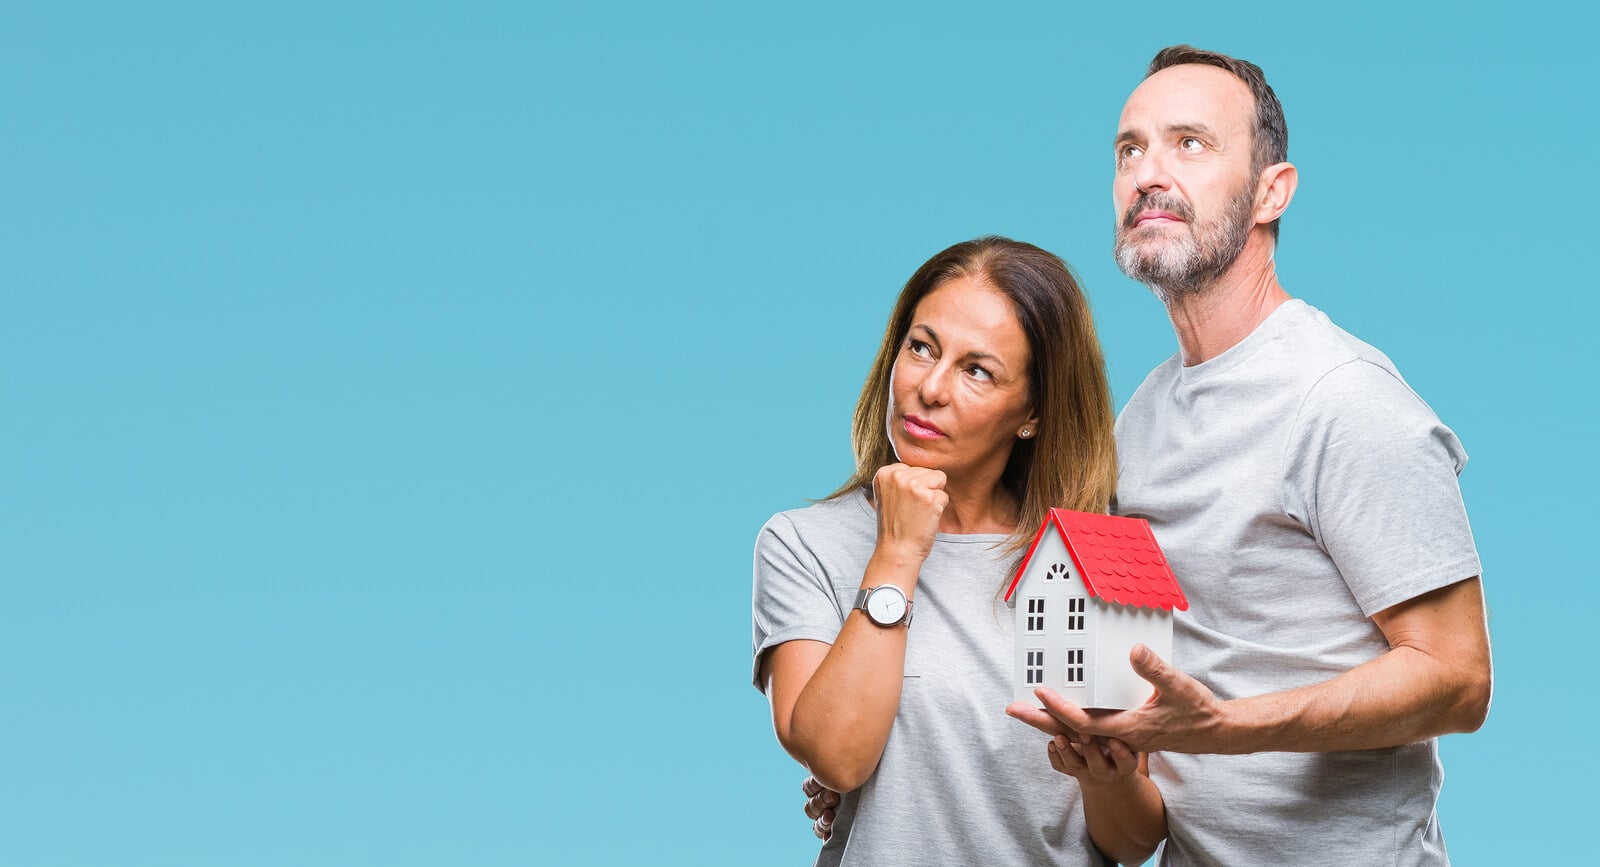 Where to Start When You Want to Buy a Home